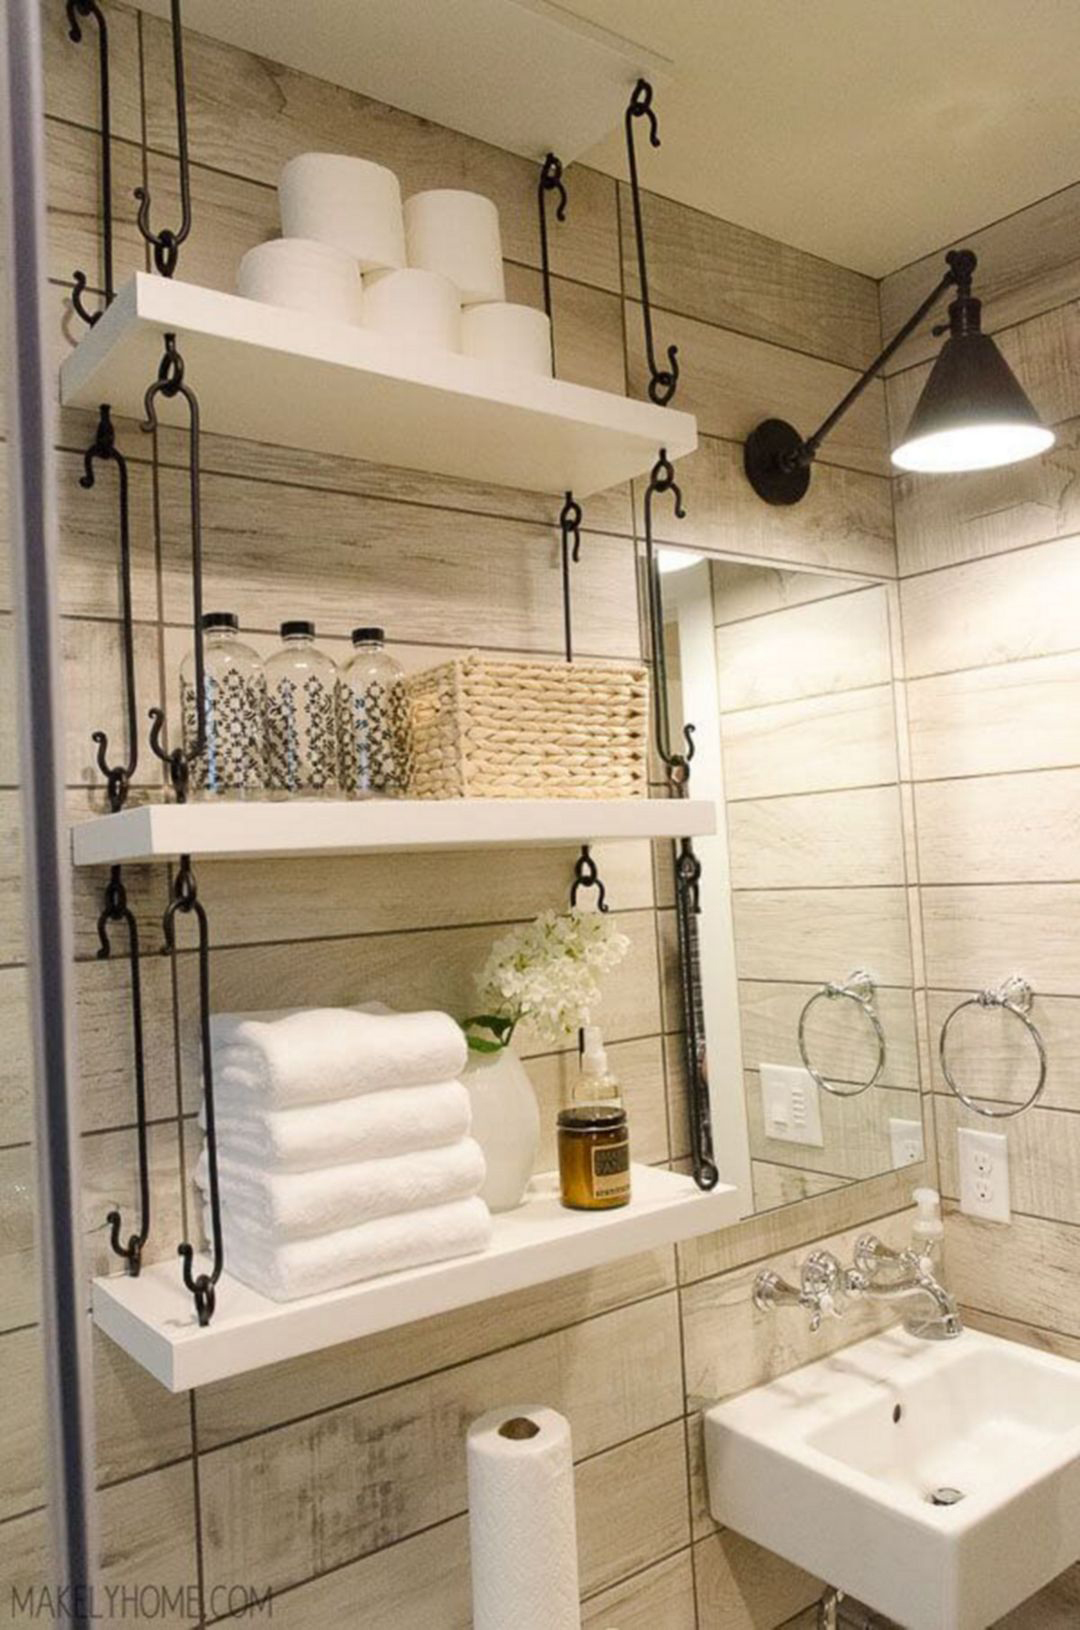 Glam bathroom designed by ferris rafauli glamorous bathrooms for Small bathroom designs bloggers